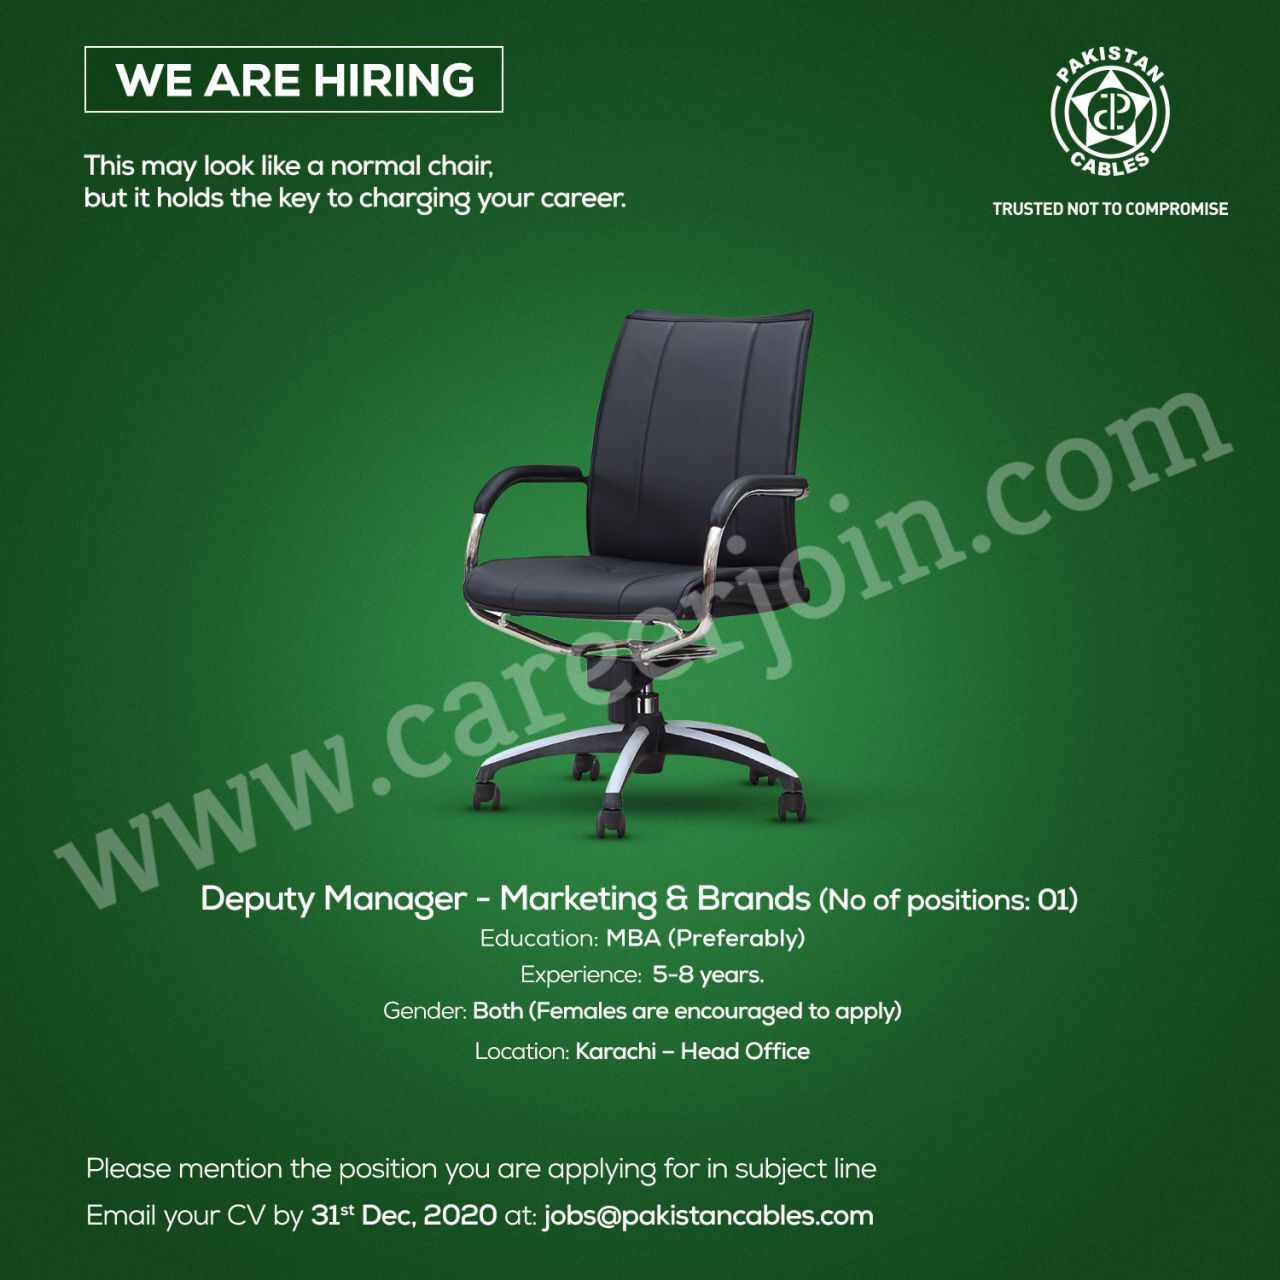 Latest Pakistan Cables Limited Jobs in Pakistan For Deputy Manager Marketing & Brands Posts